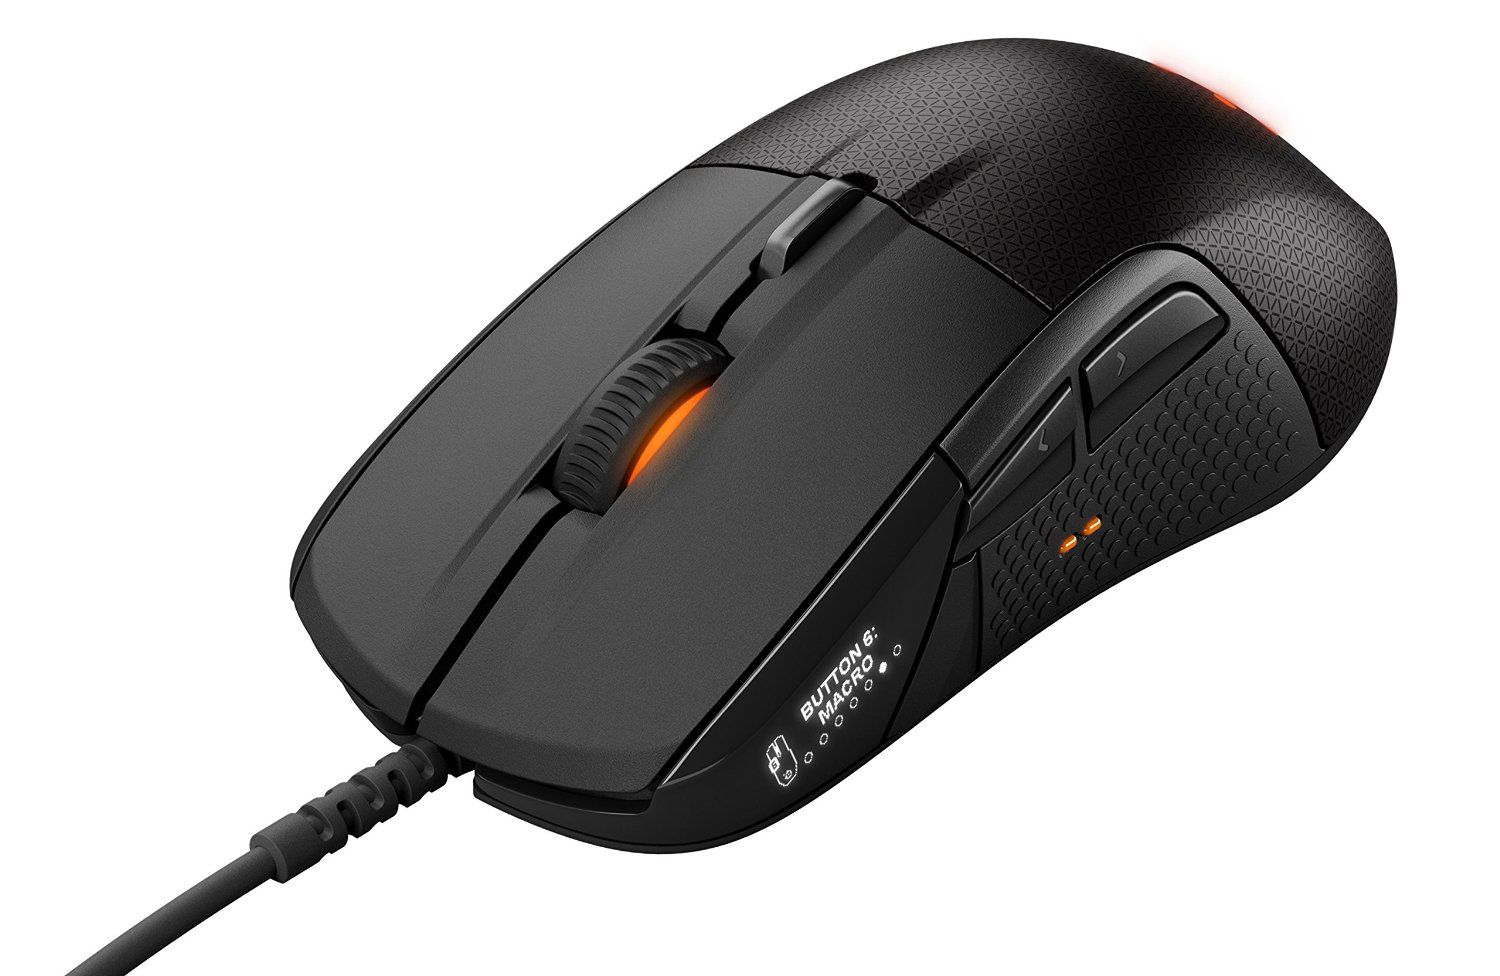 SteelSeries Rival 700 migliori mouse gaming